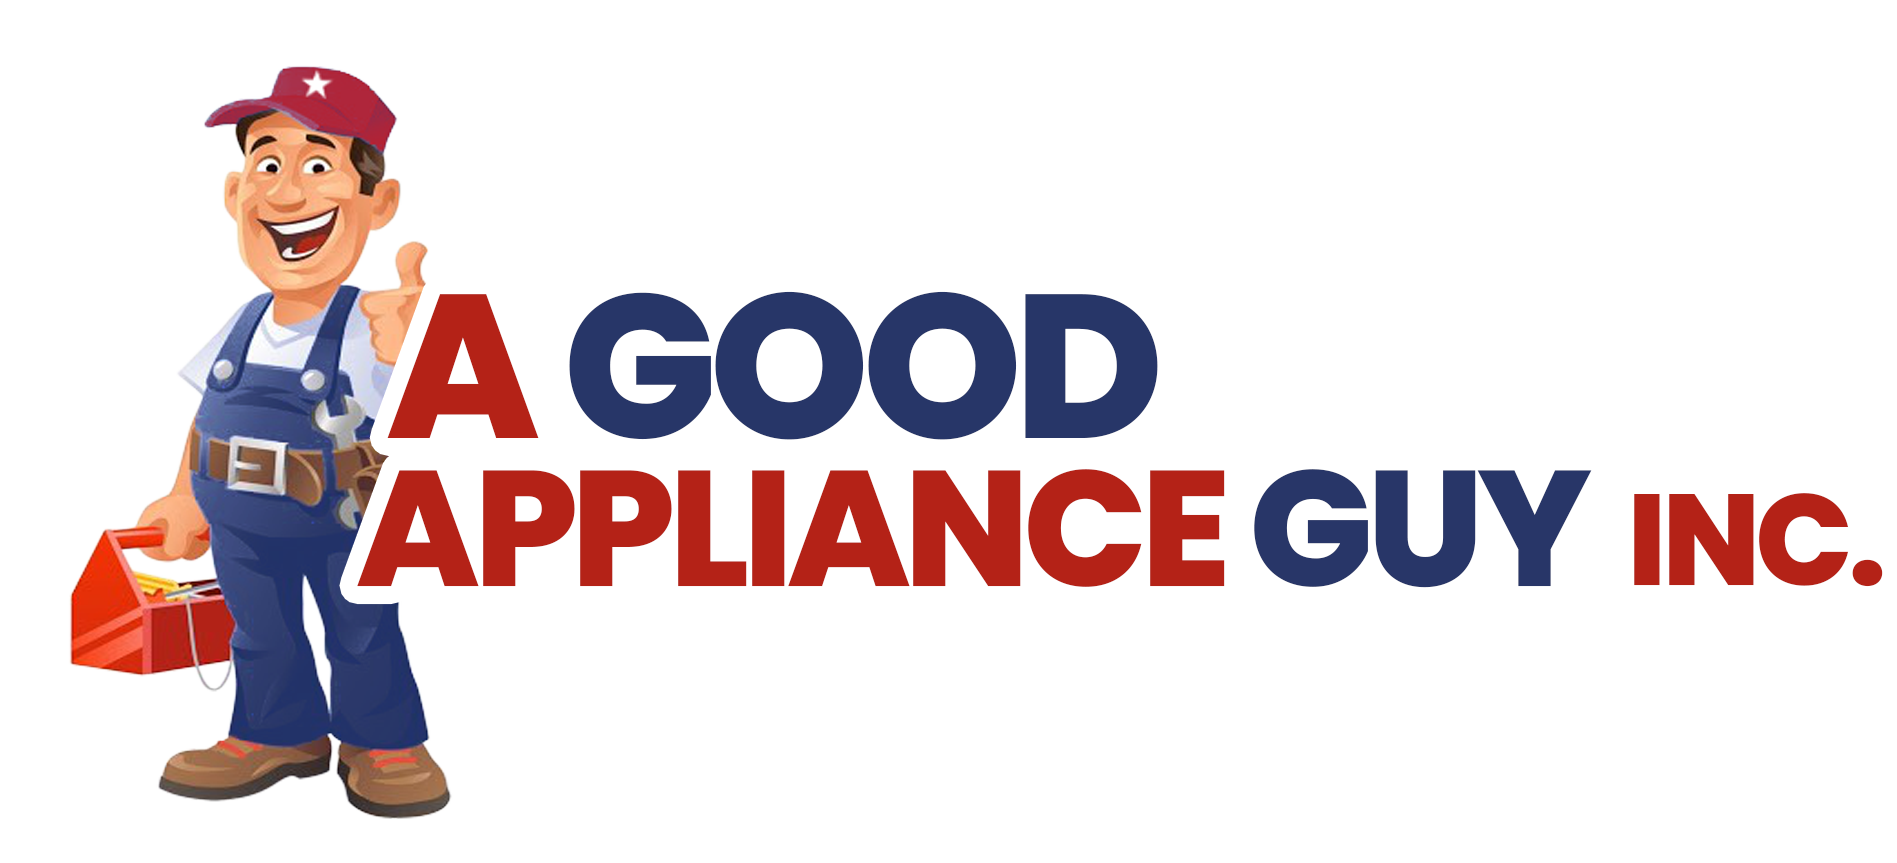 A GOOD APPLIANCE GUY NYC